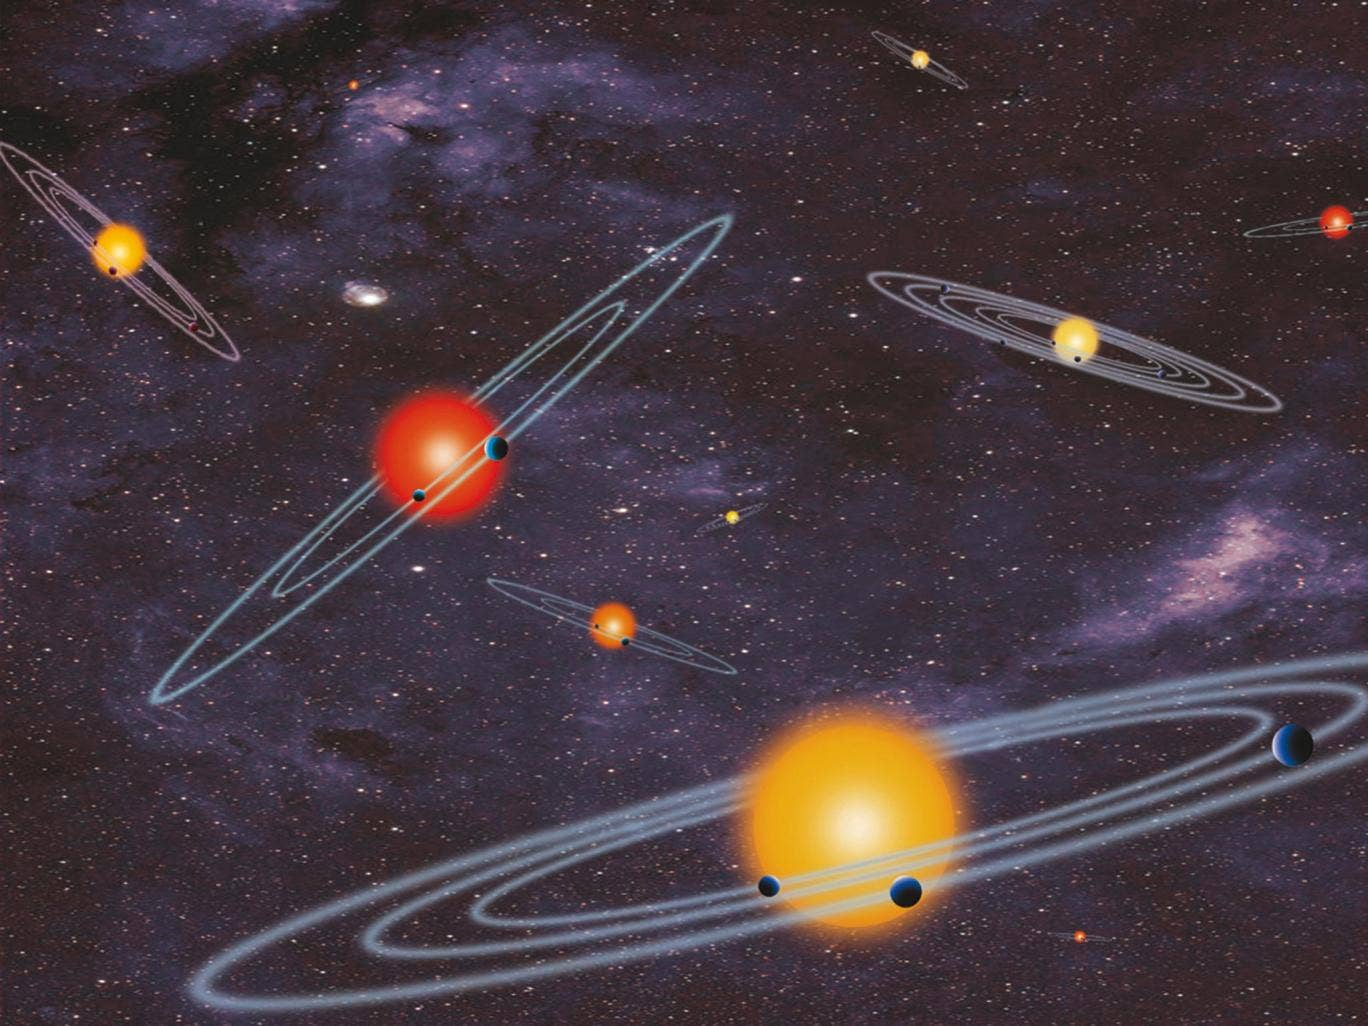 An artist's concept of multiple-transiting planet systems, which are stars with more than one planet